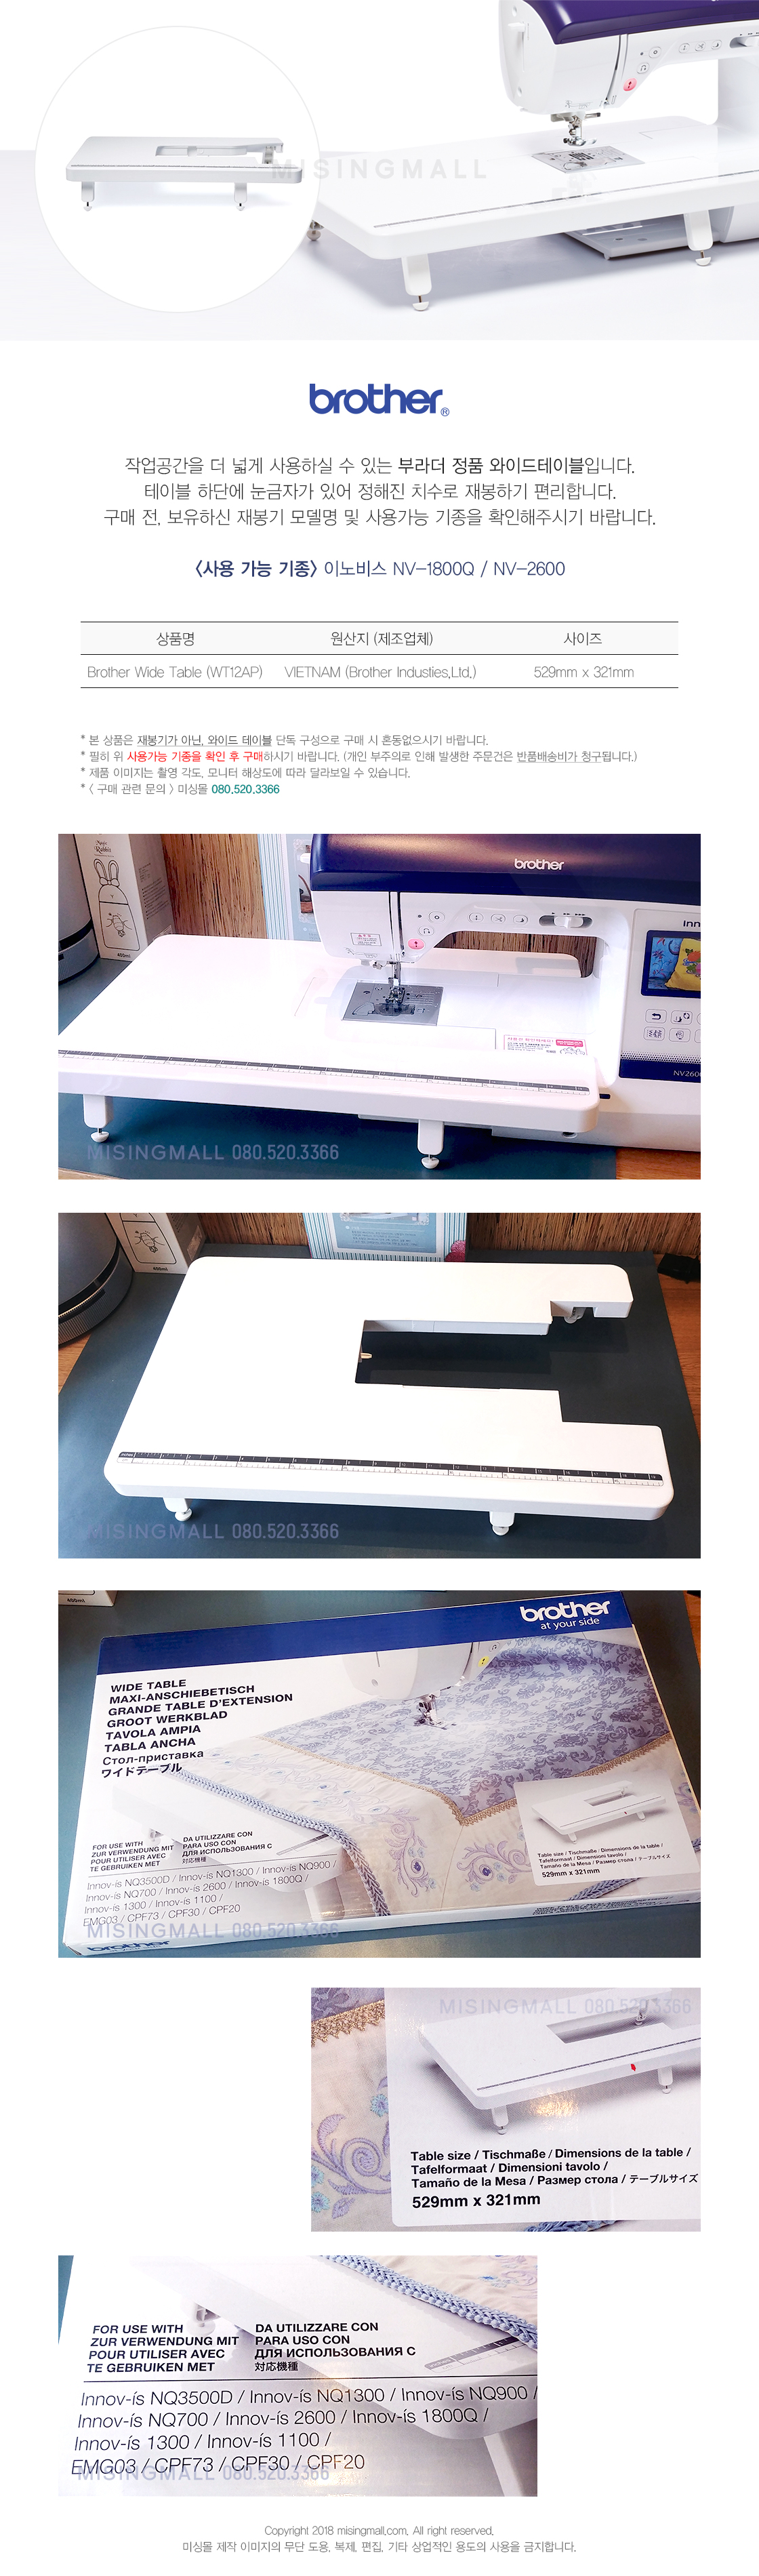 brother widetable wt14